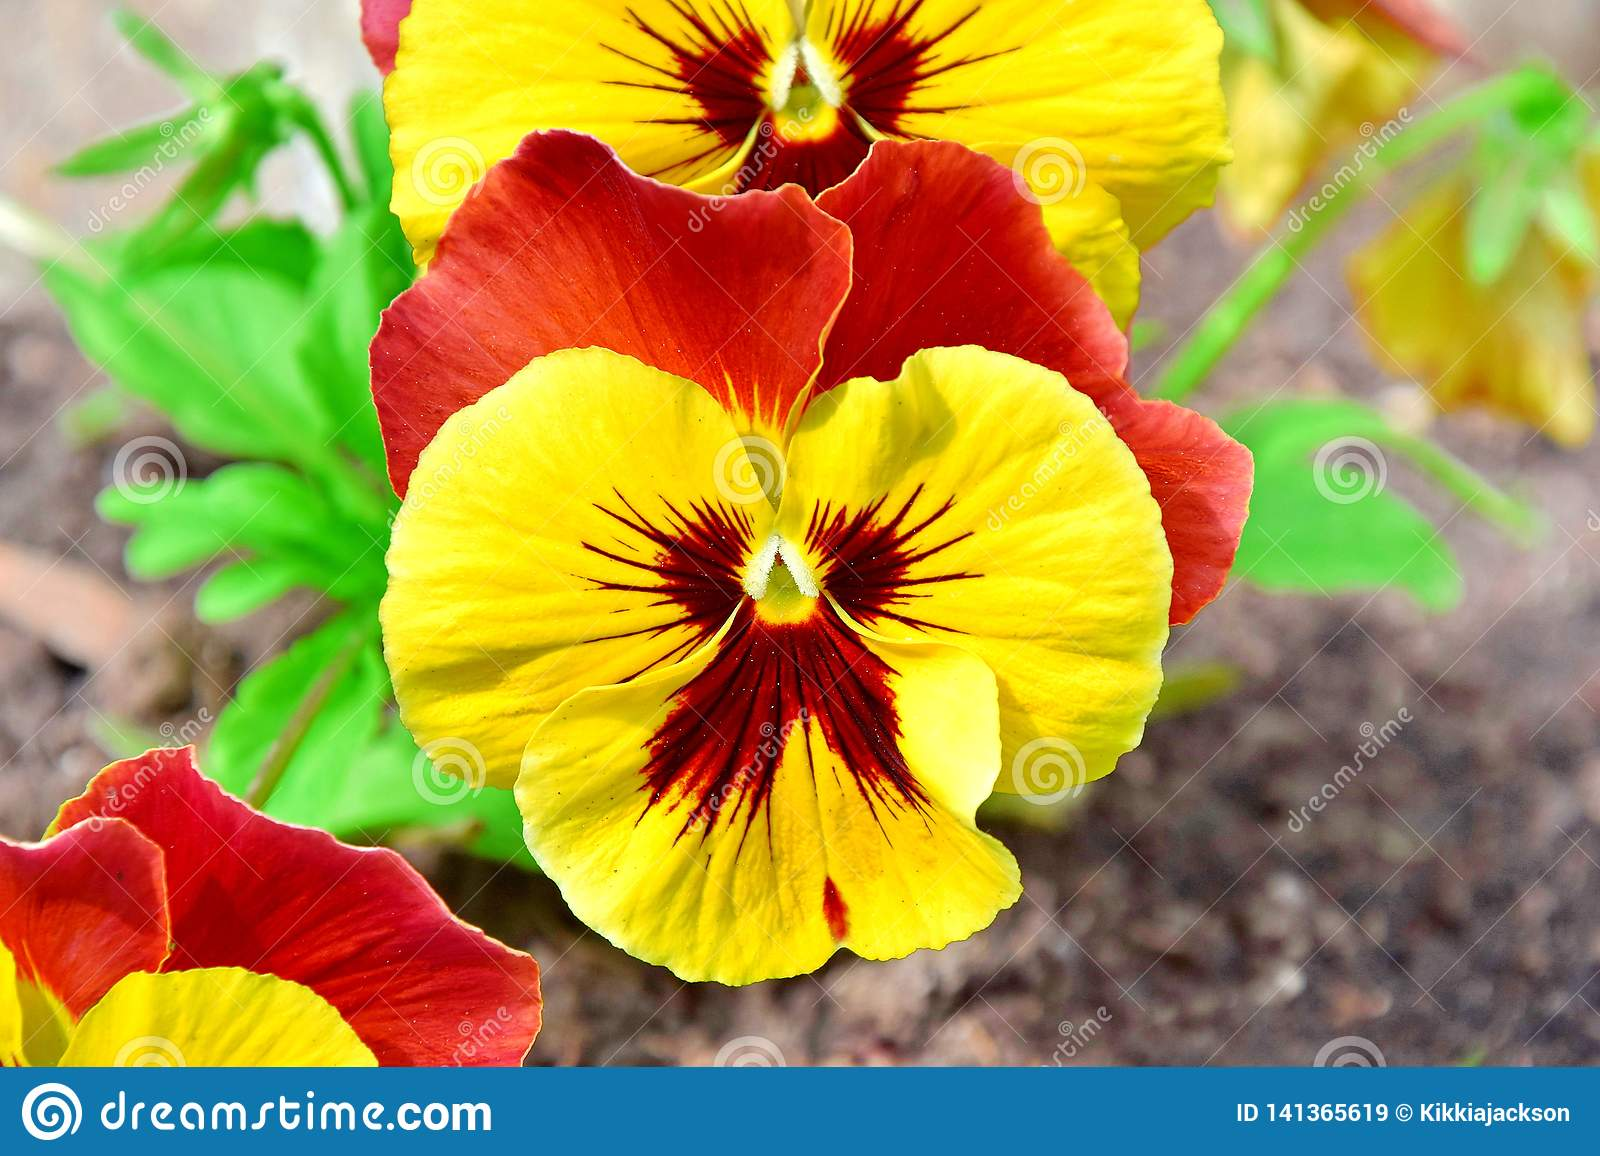 Viola Tricolor Hortensis Flowers Home Gardening Plants Stock Photo